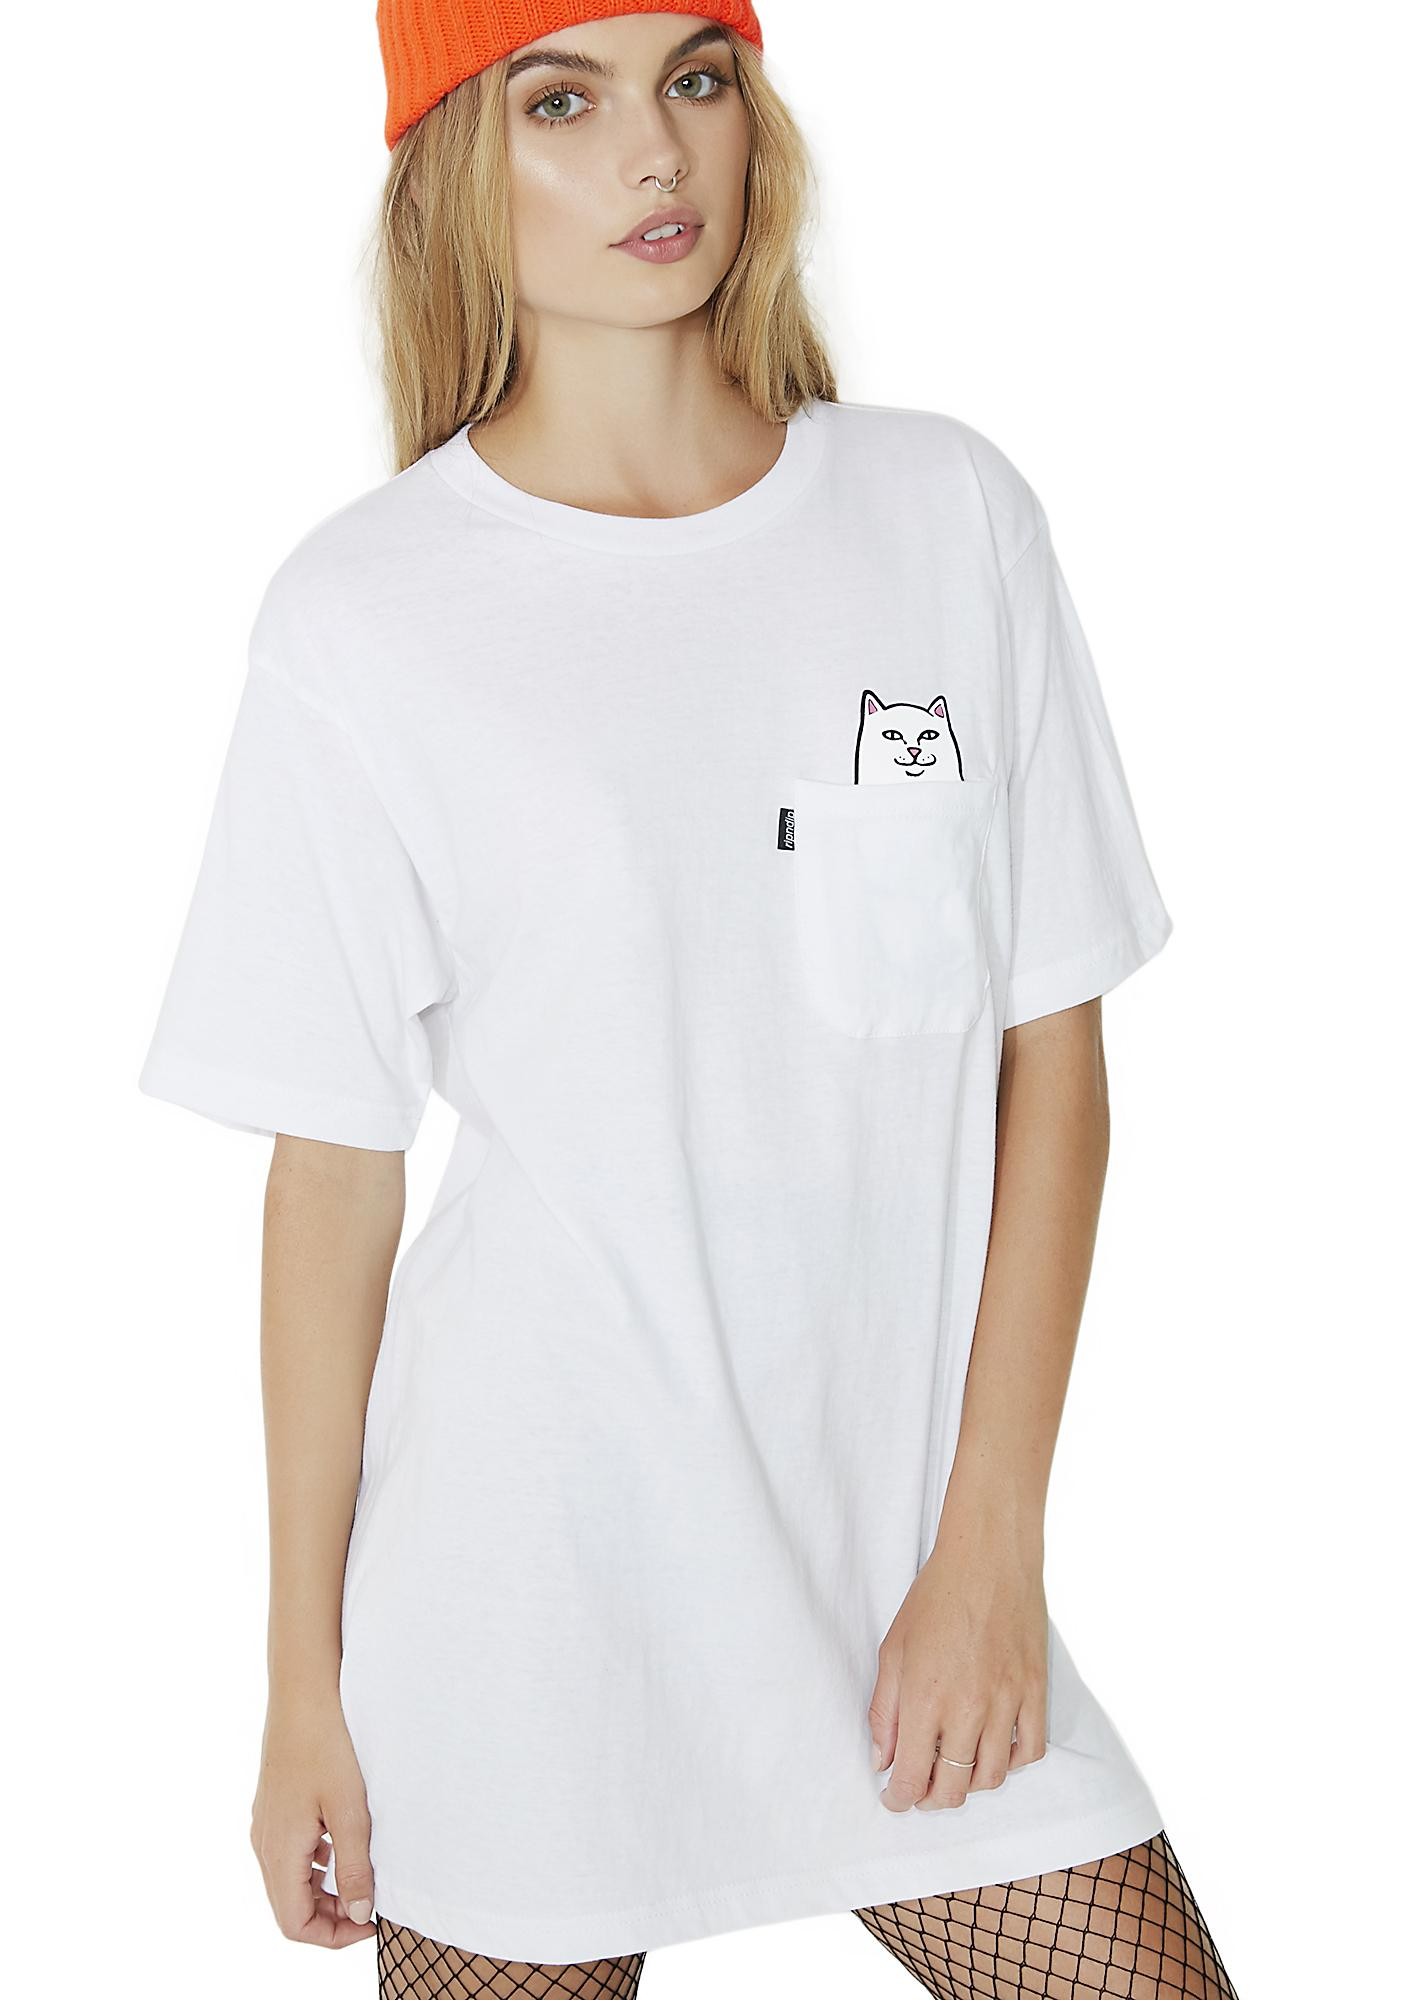 RIPNDIP Creamy Lord Nermal Pocket Tee